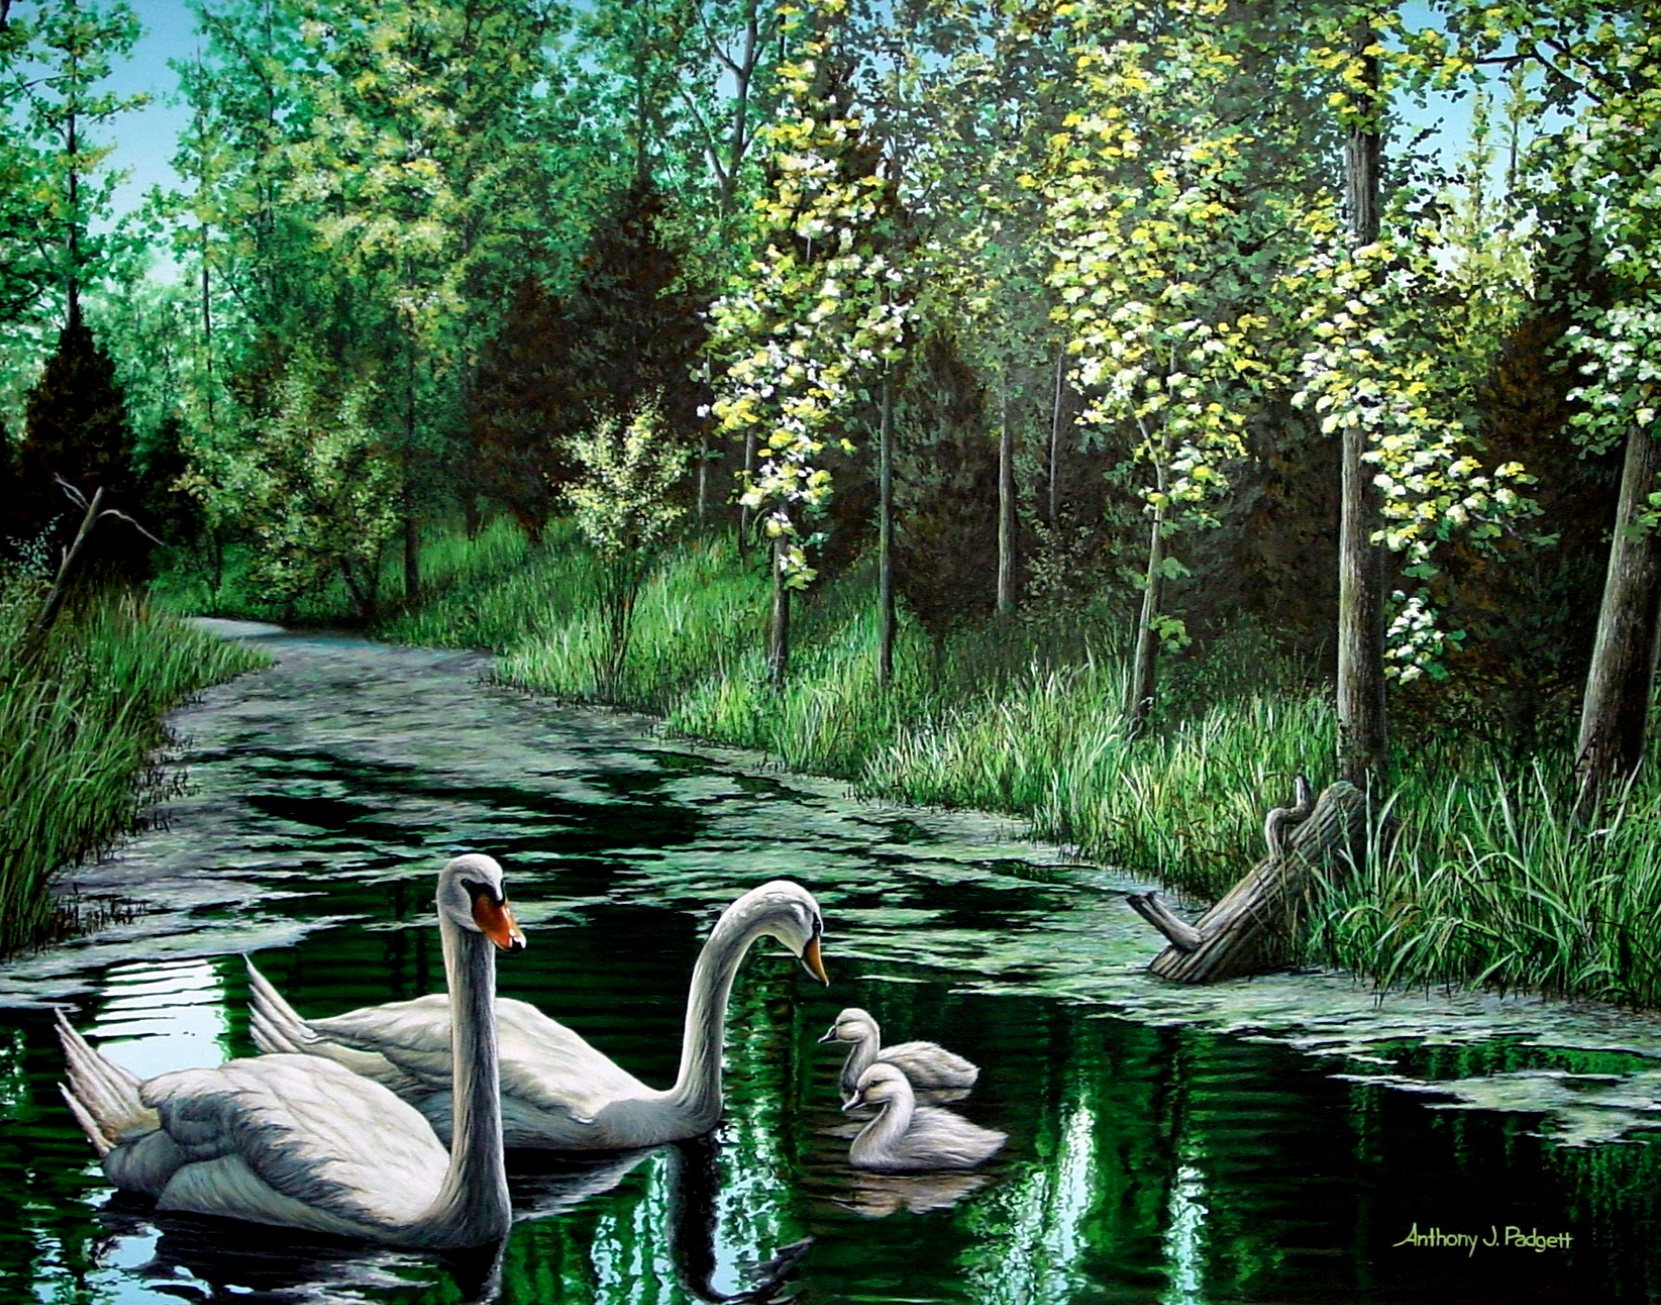 A Day Out - Swans